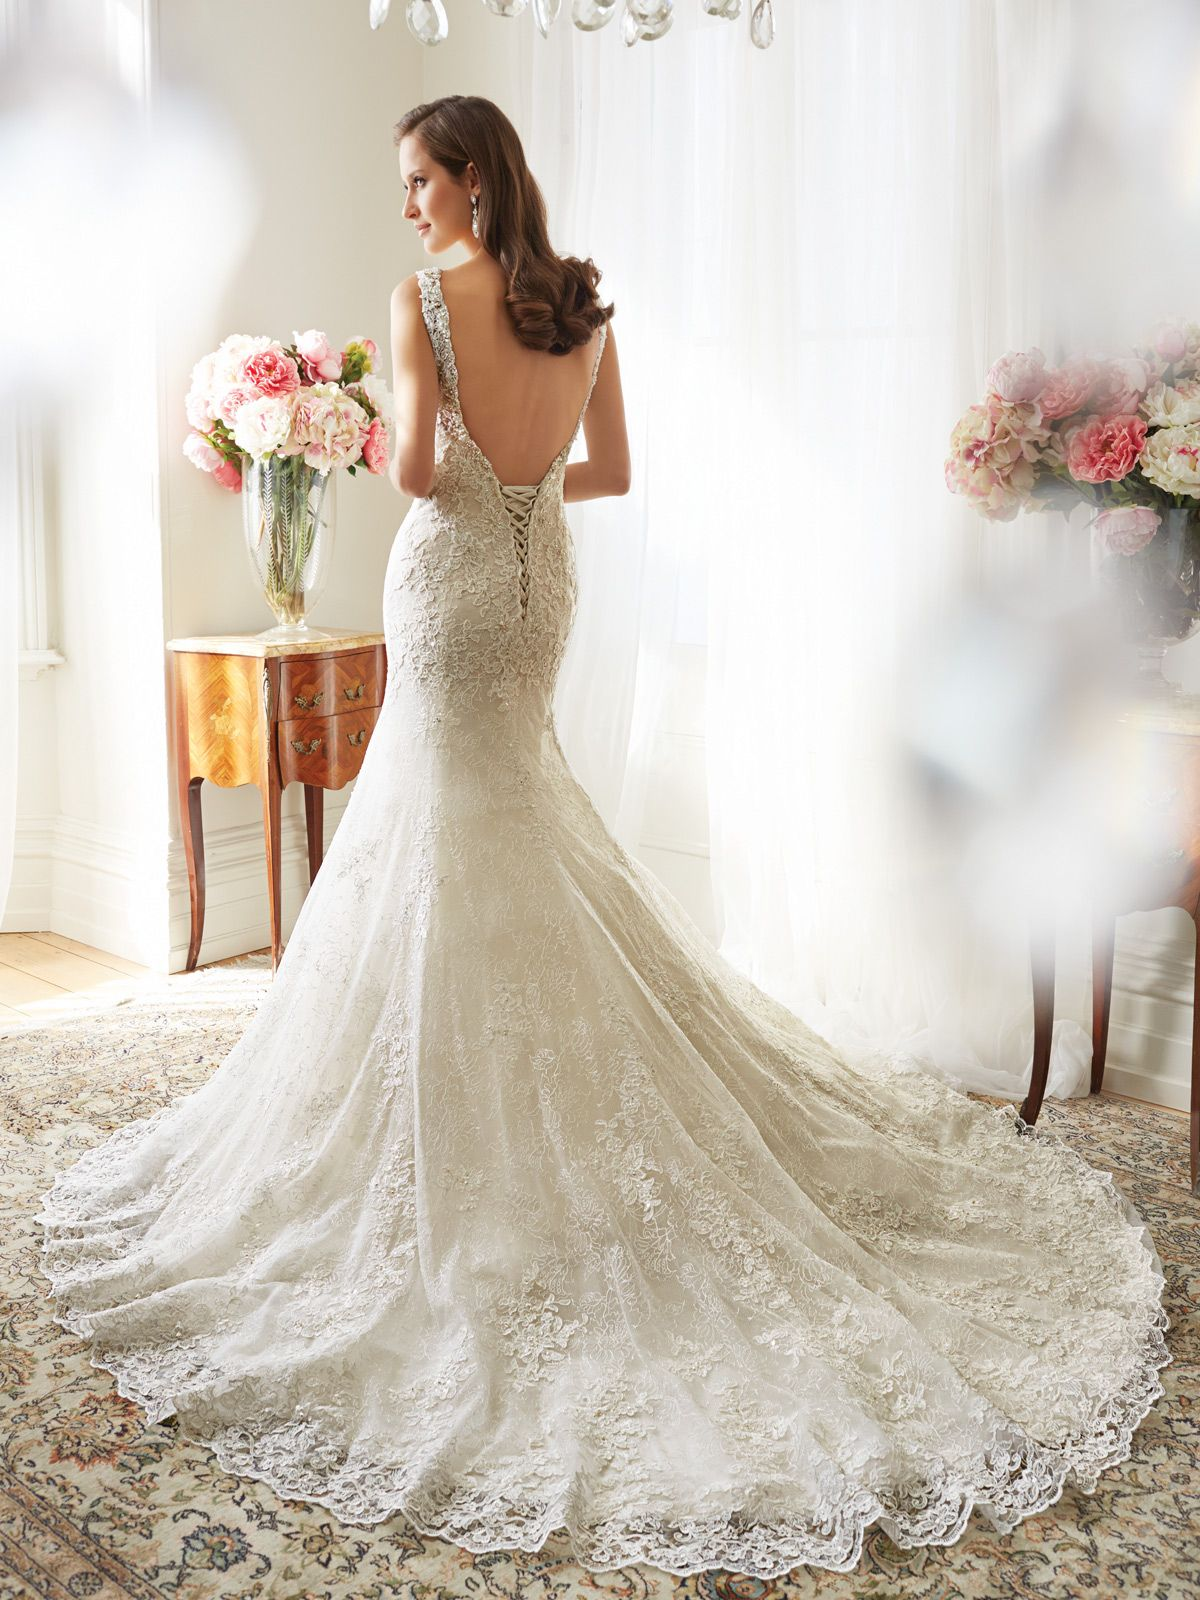 0824908d528 Sophia Tolli - Y11561 – Teal -Fit and flare wedding dress with bateau  neckline